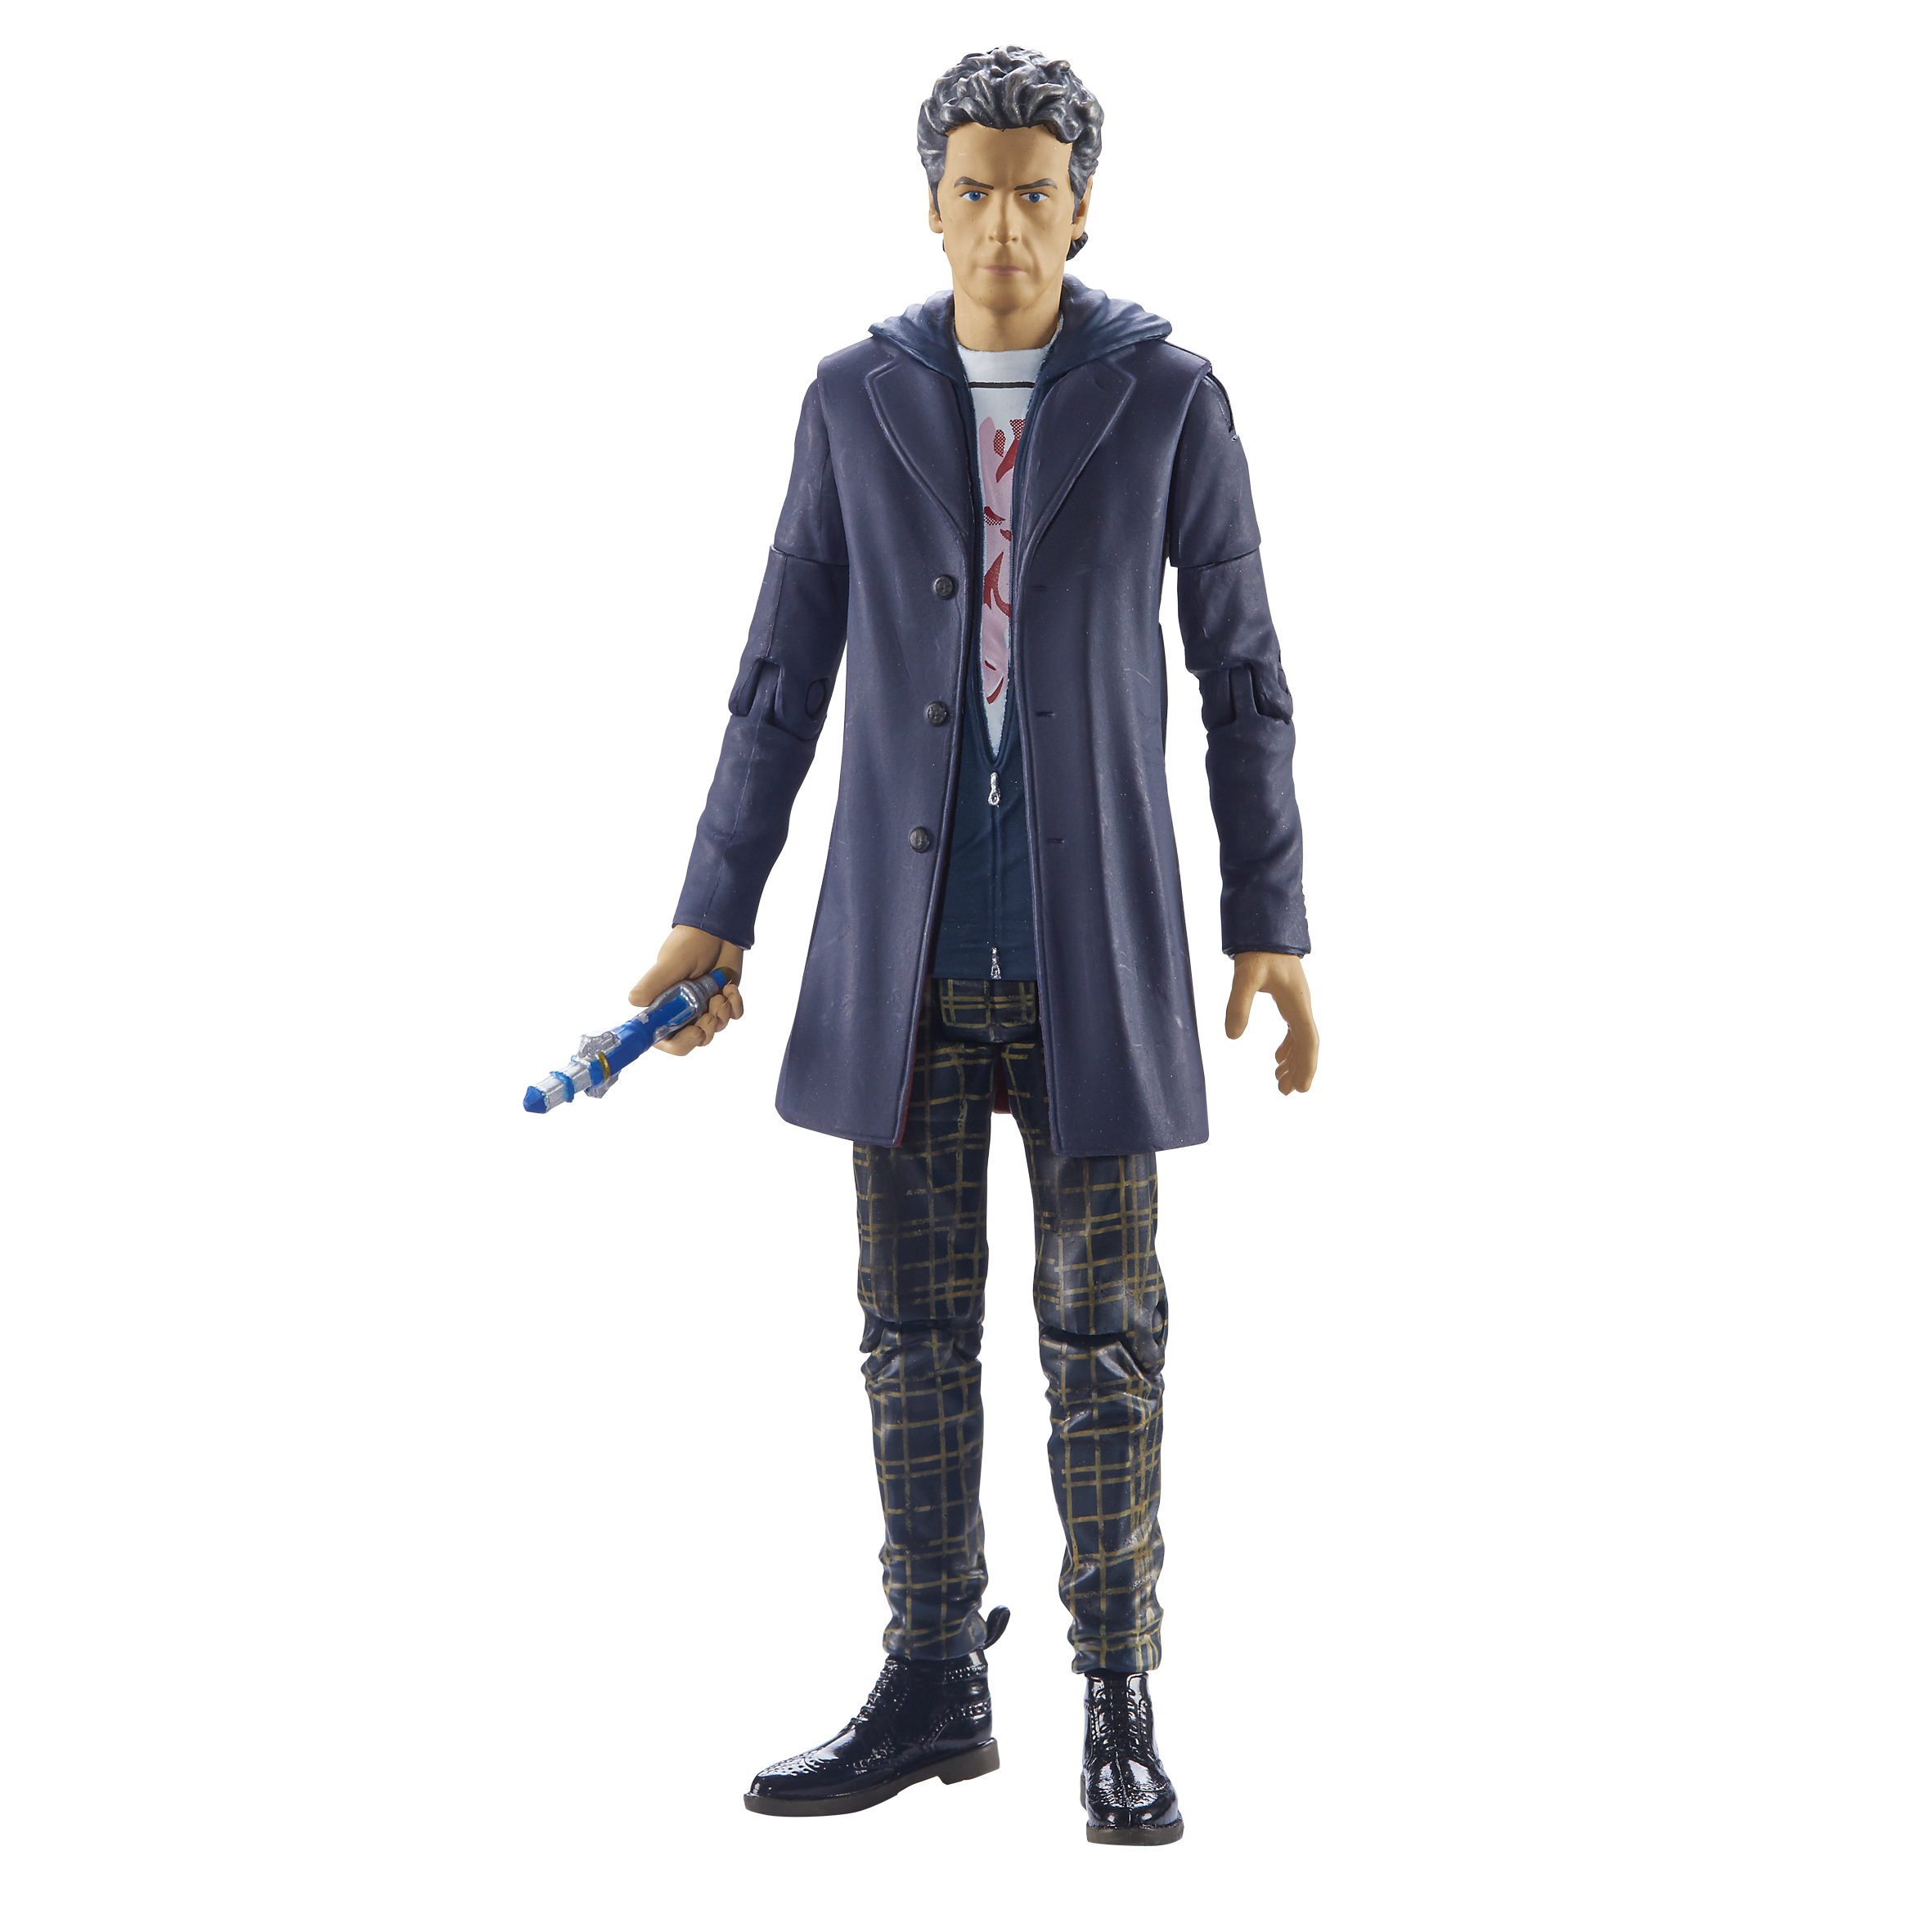 Twelth Doctor Hoodie With Check Trousers (Credit: Character Options)